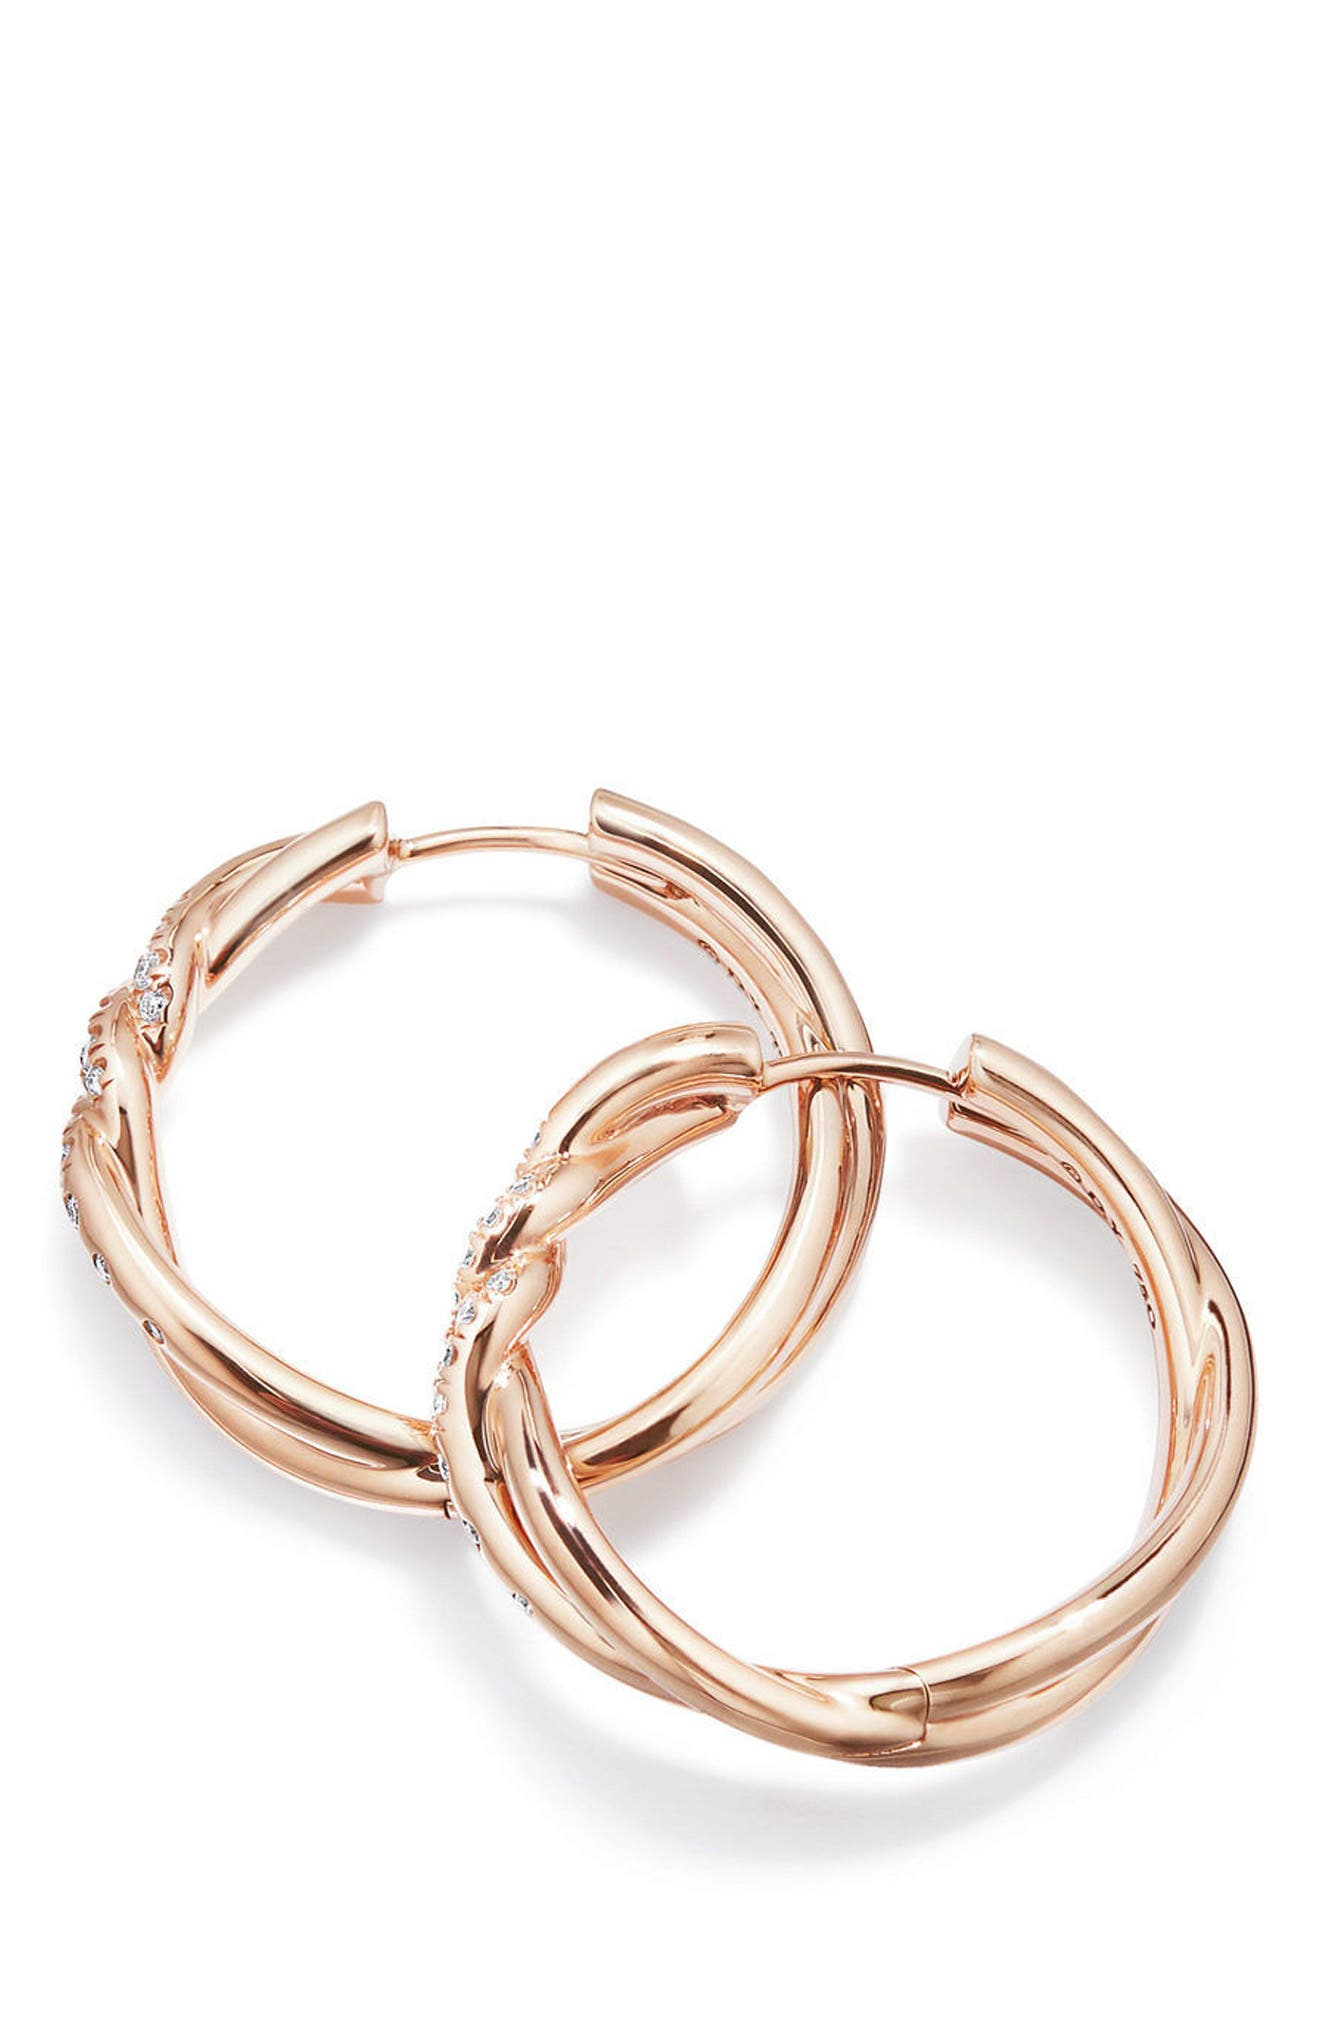 David Yurman Continuance Hoop Earrings